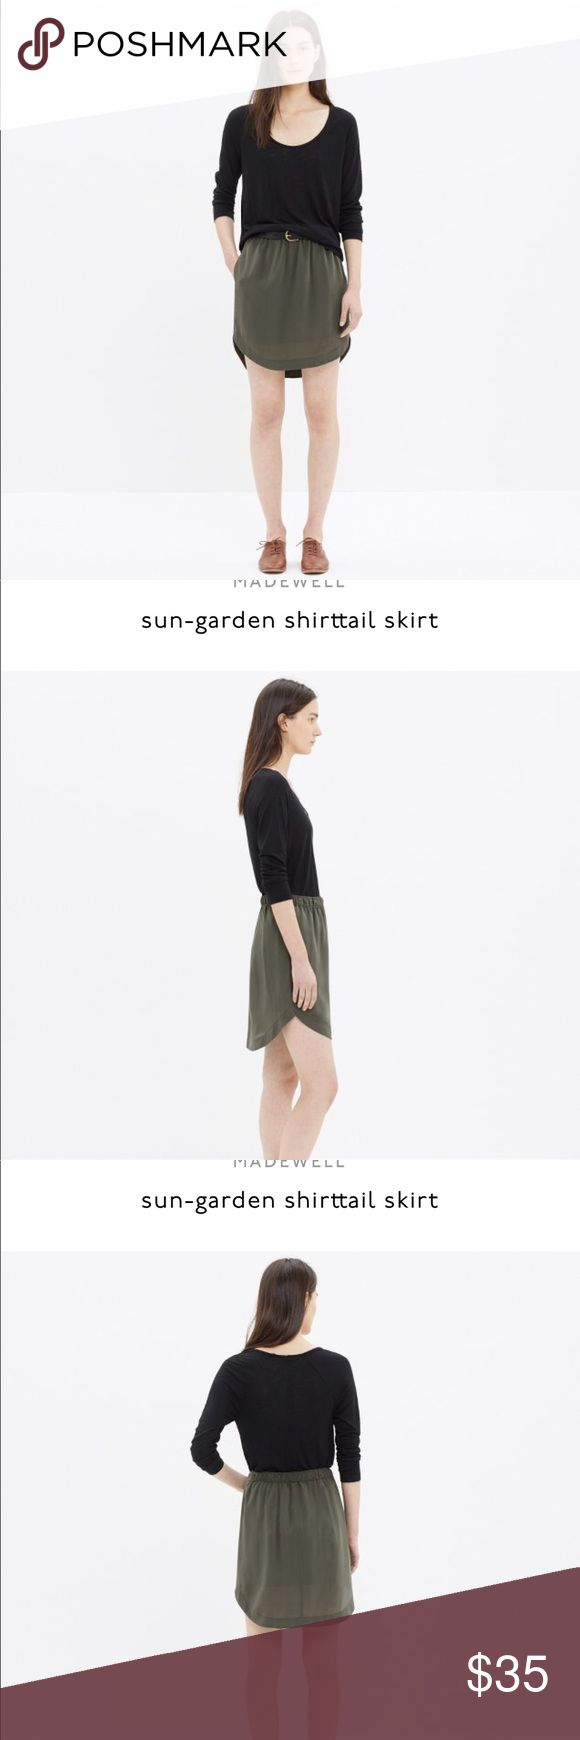 Madewell Sun Garden Mini skirt in Cabernet In excellent used condition. Please see description in pictures. No damages, no stains. No modeling. No trades. Please keep offers to offer button not in comments! Thanks in advance. Madewell Skirts Mini